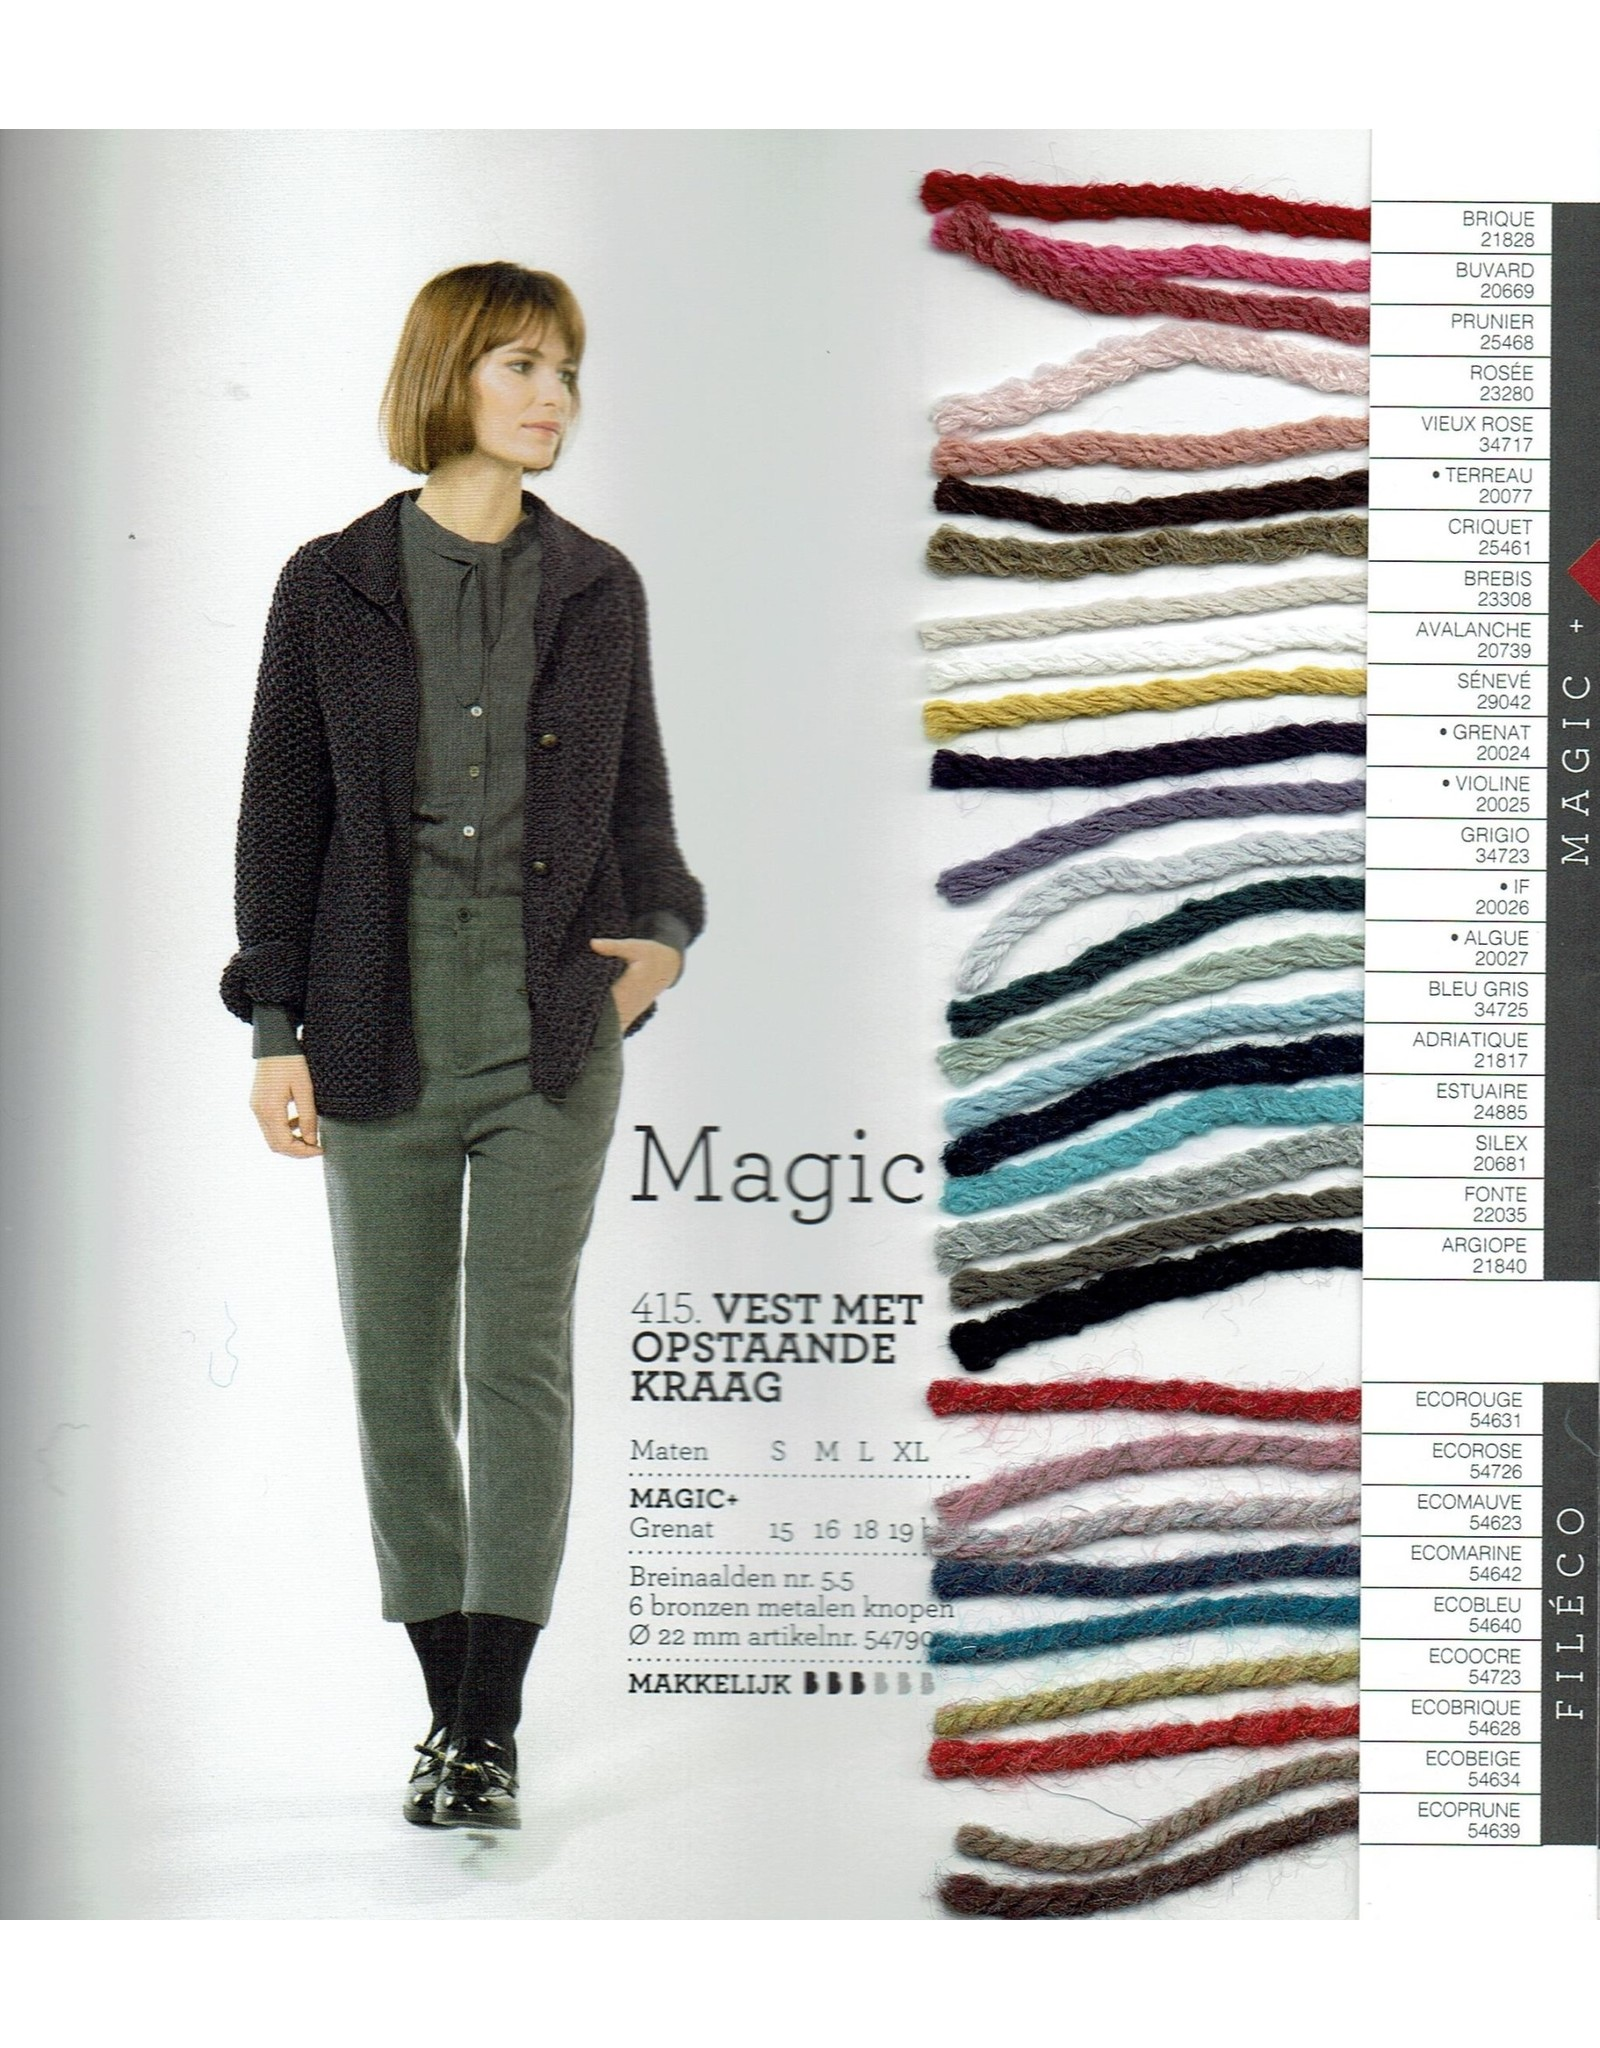 Bergère de France Magic+ van Bergère de France - 80 m - 50 g